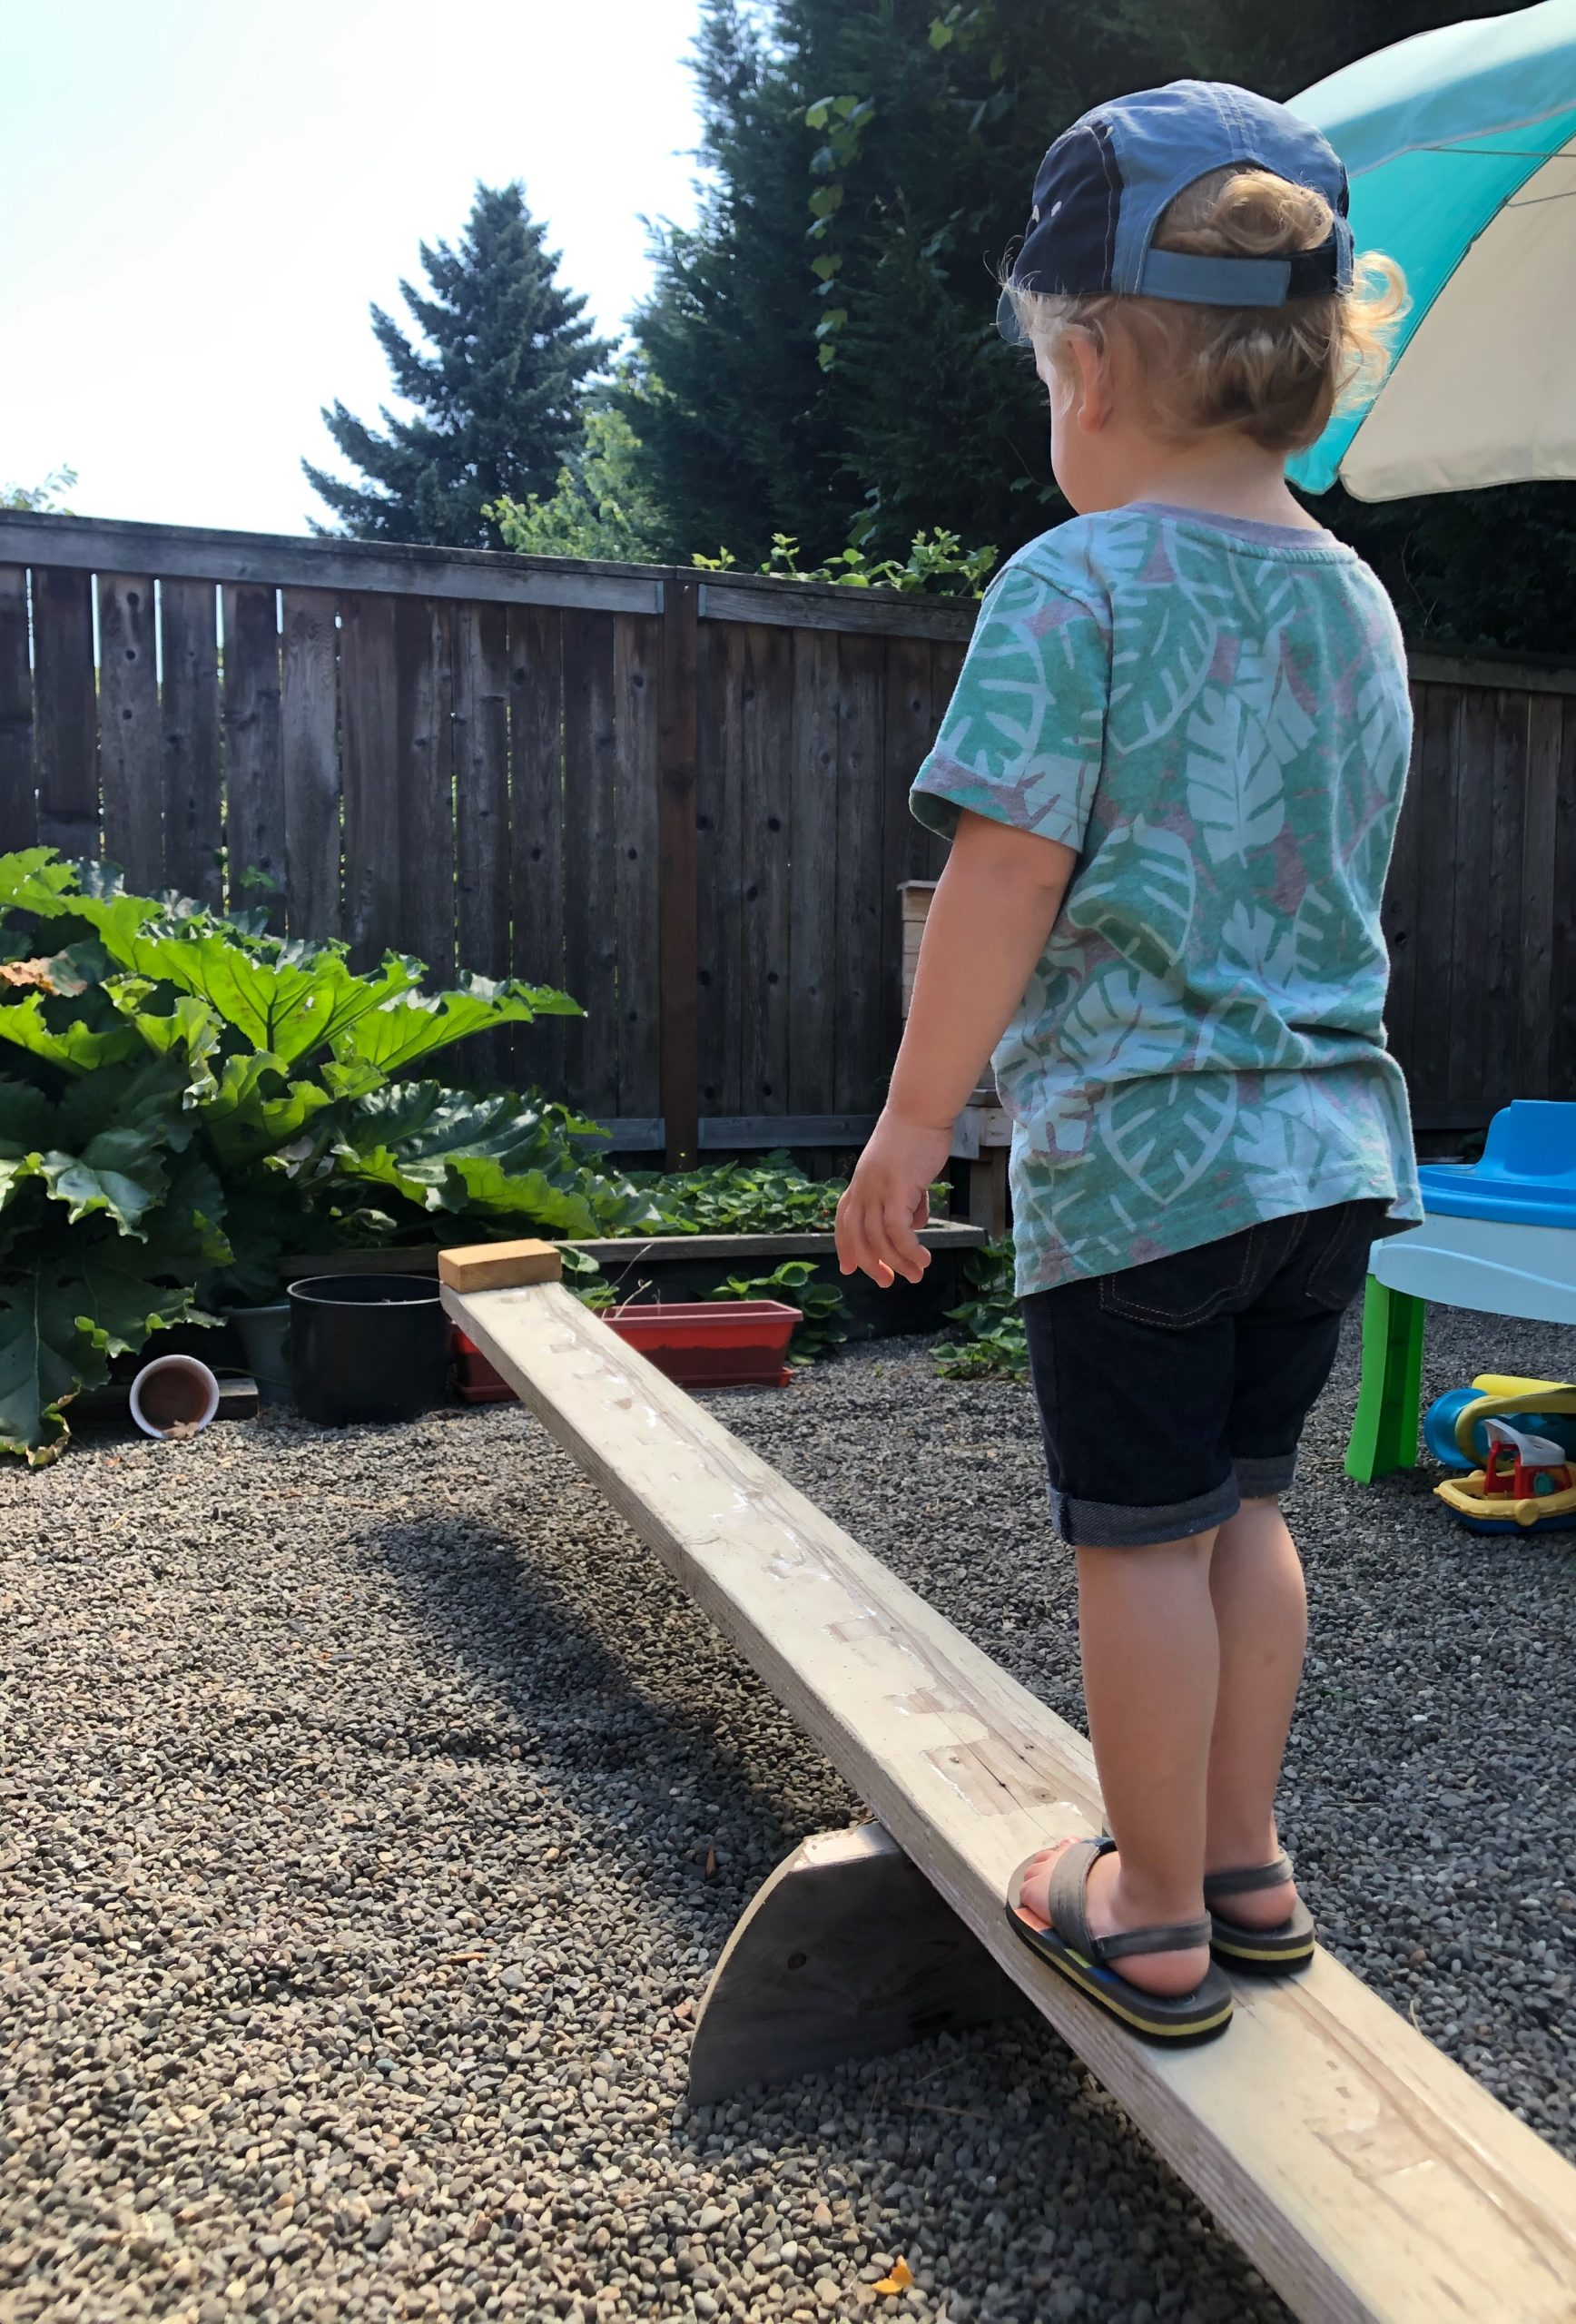 Outdoor play balancing